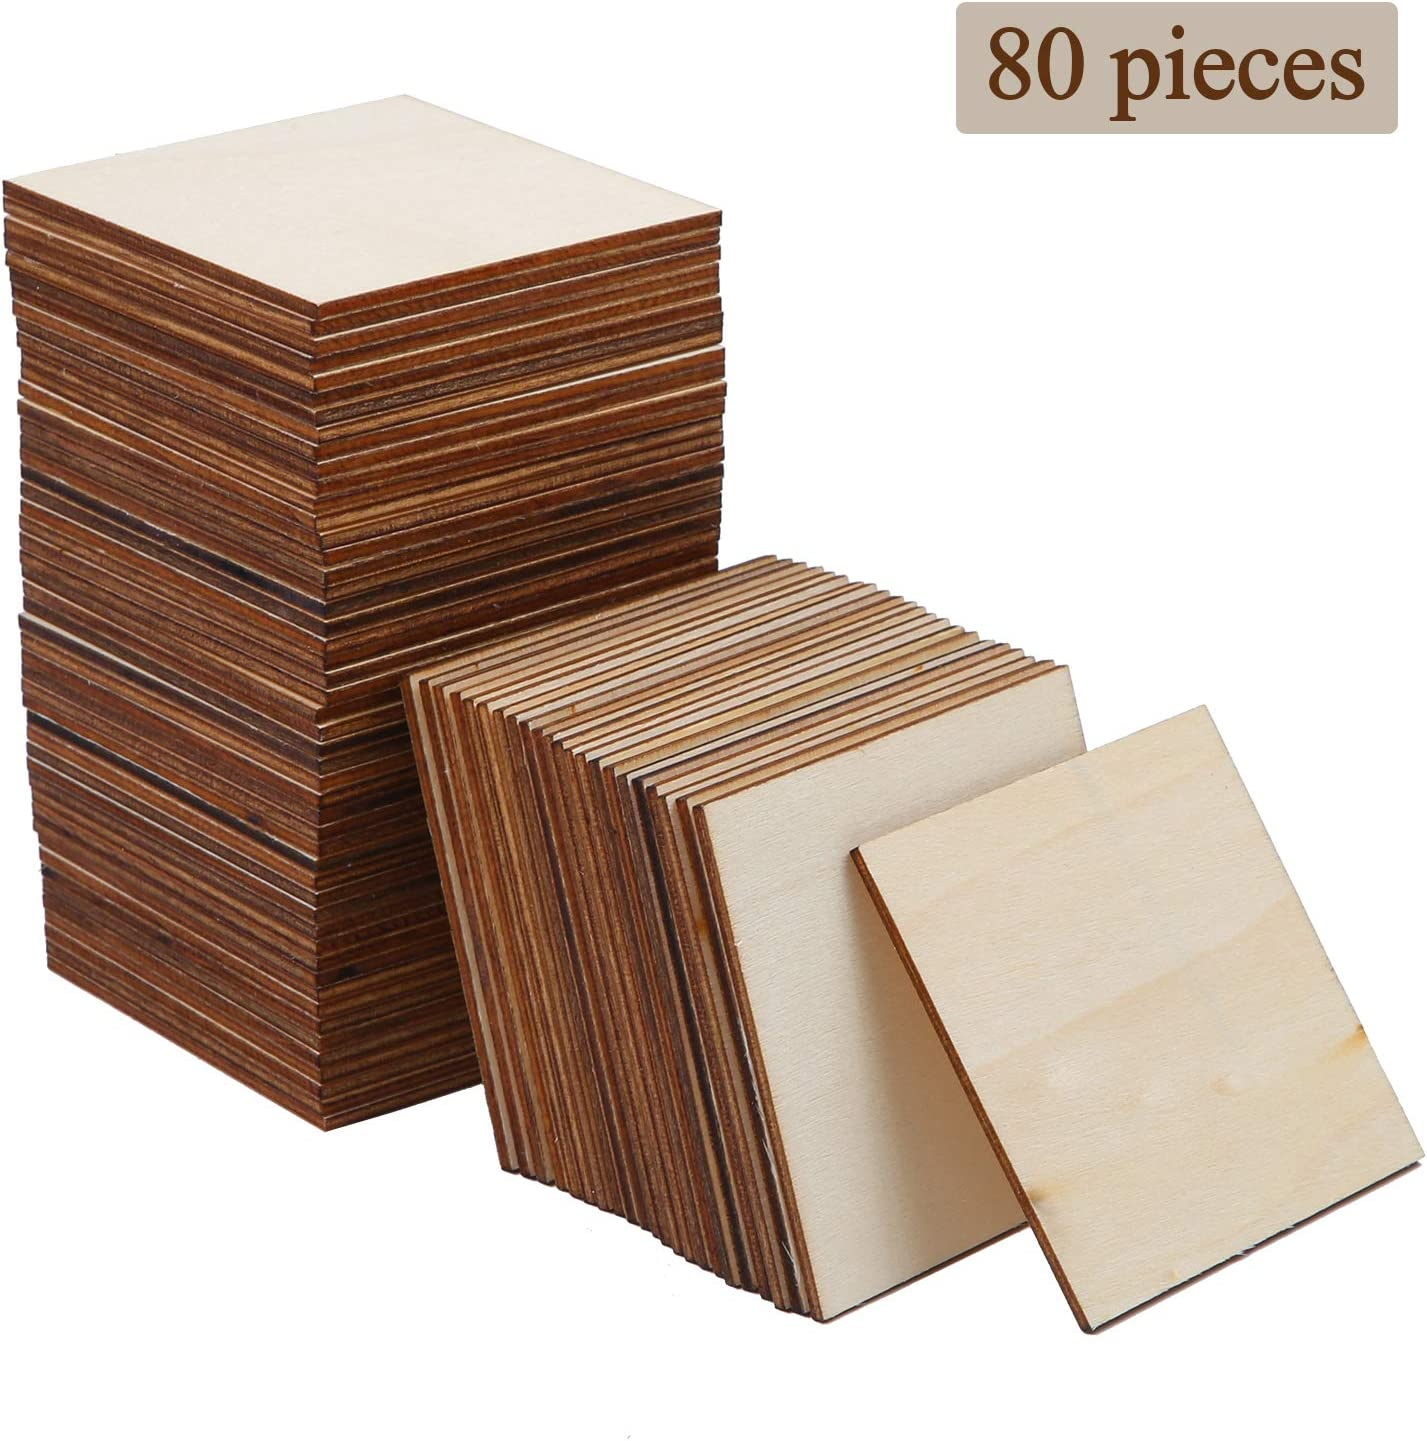 3 x 3 Inches Ruisita 80 Pieces Square Unfinished Blank Wood Pieces Wooden Cutout Tiles for Painting Writing and DIY Arts Crafts Project,3 x 3 Inch